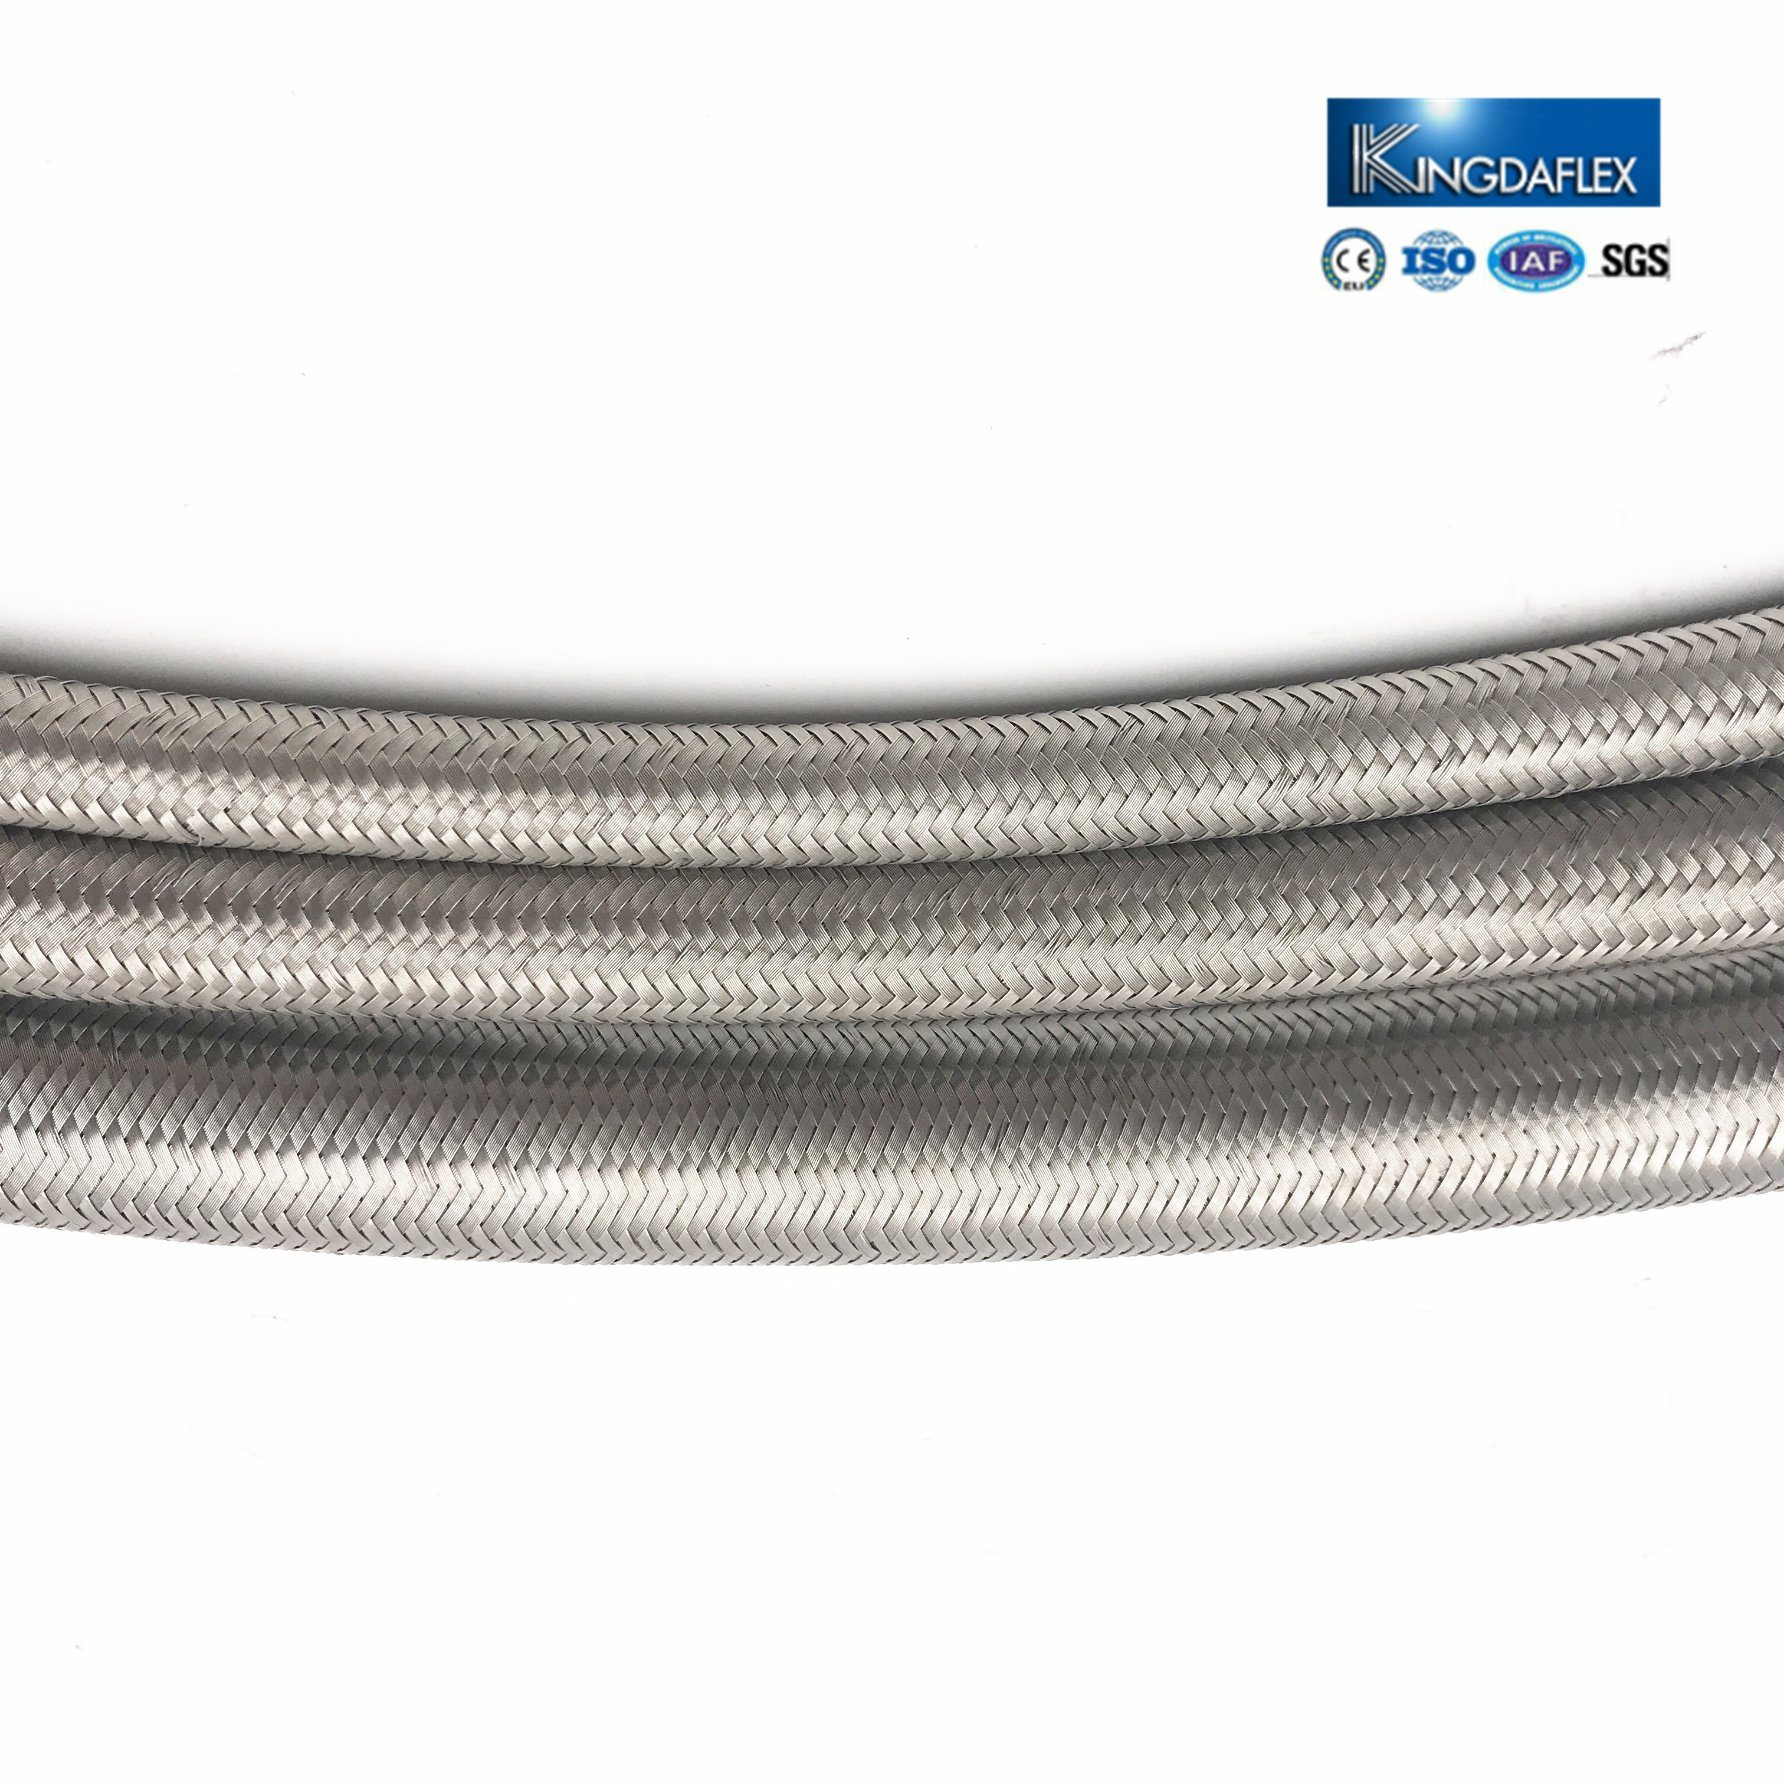 China 1/8 Inch Stainless Steel Braided Hydraulic Hose SAE 100 R14 ...